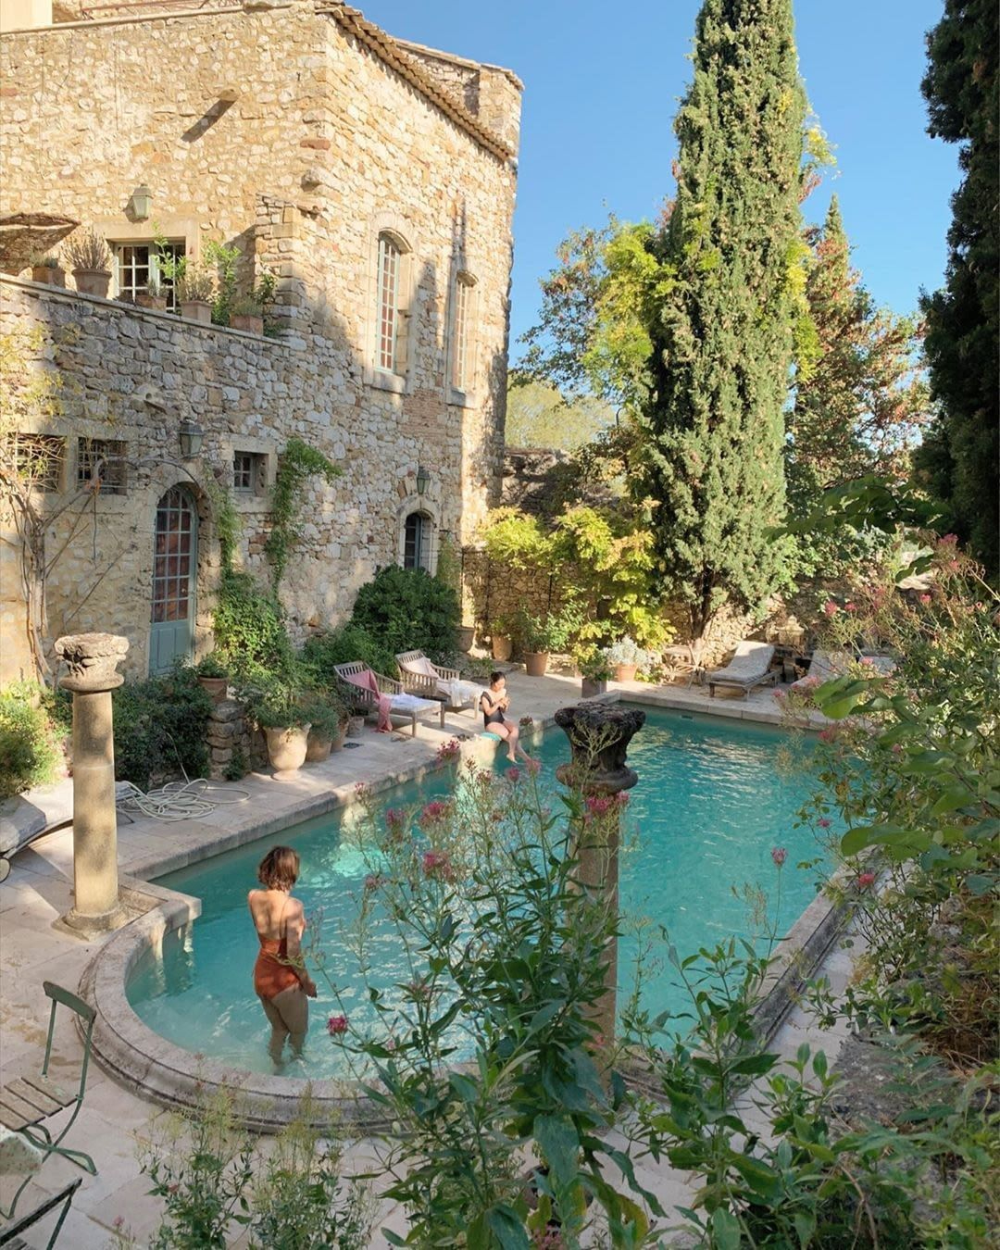 These are officially the world's most stunning Airbnbs right now